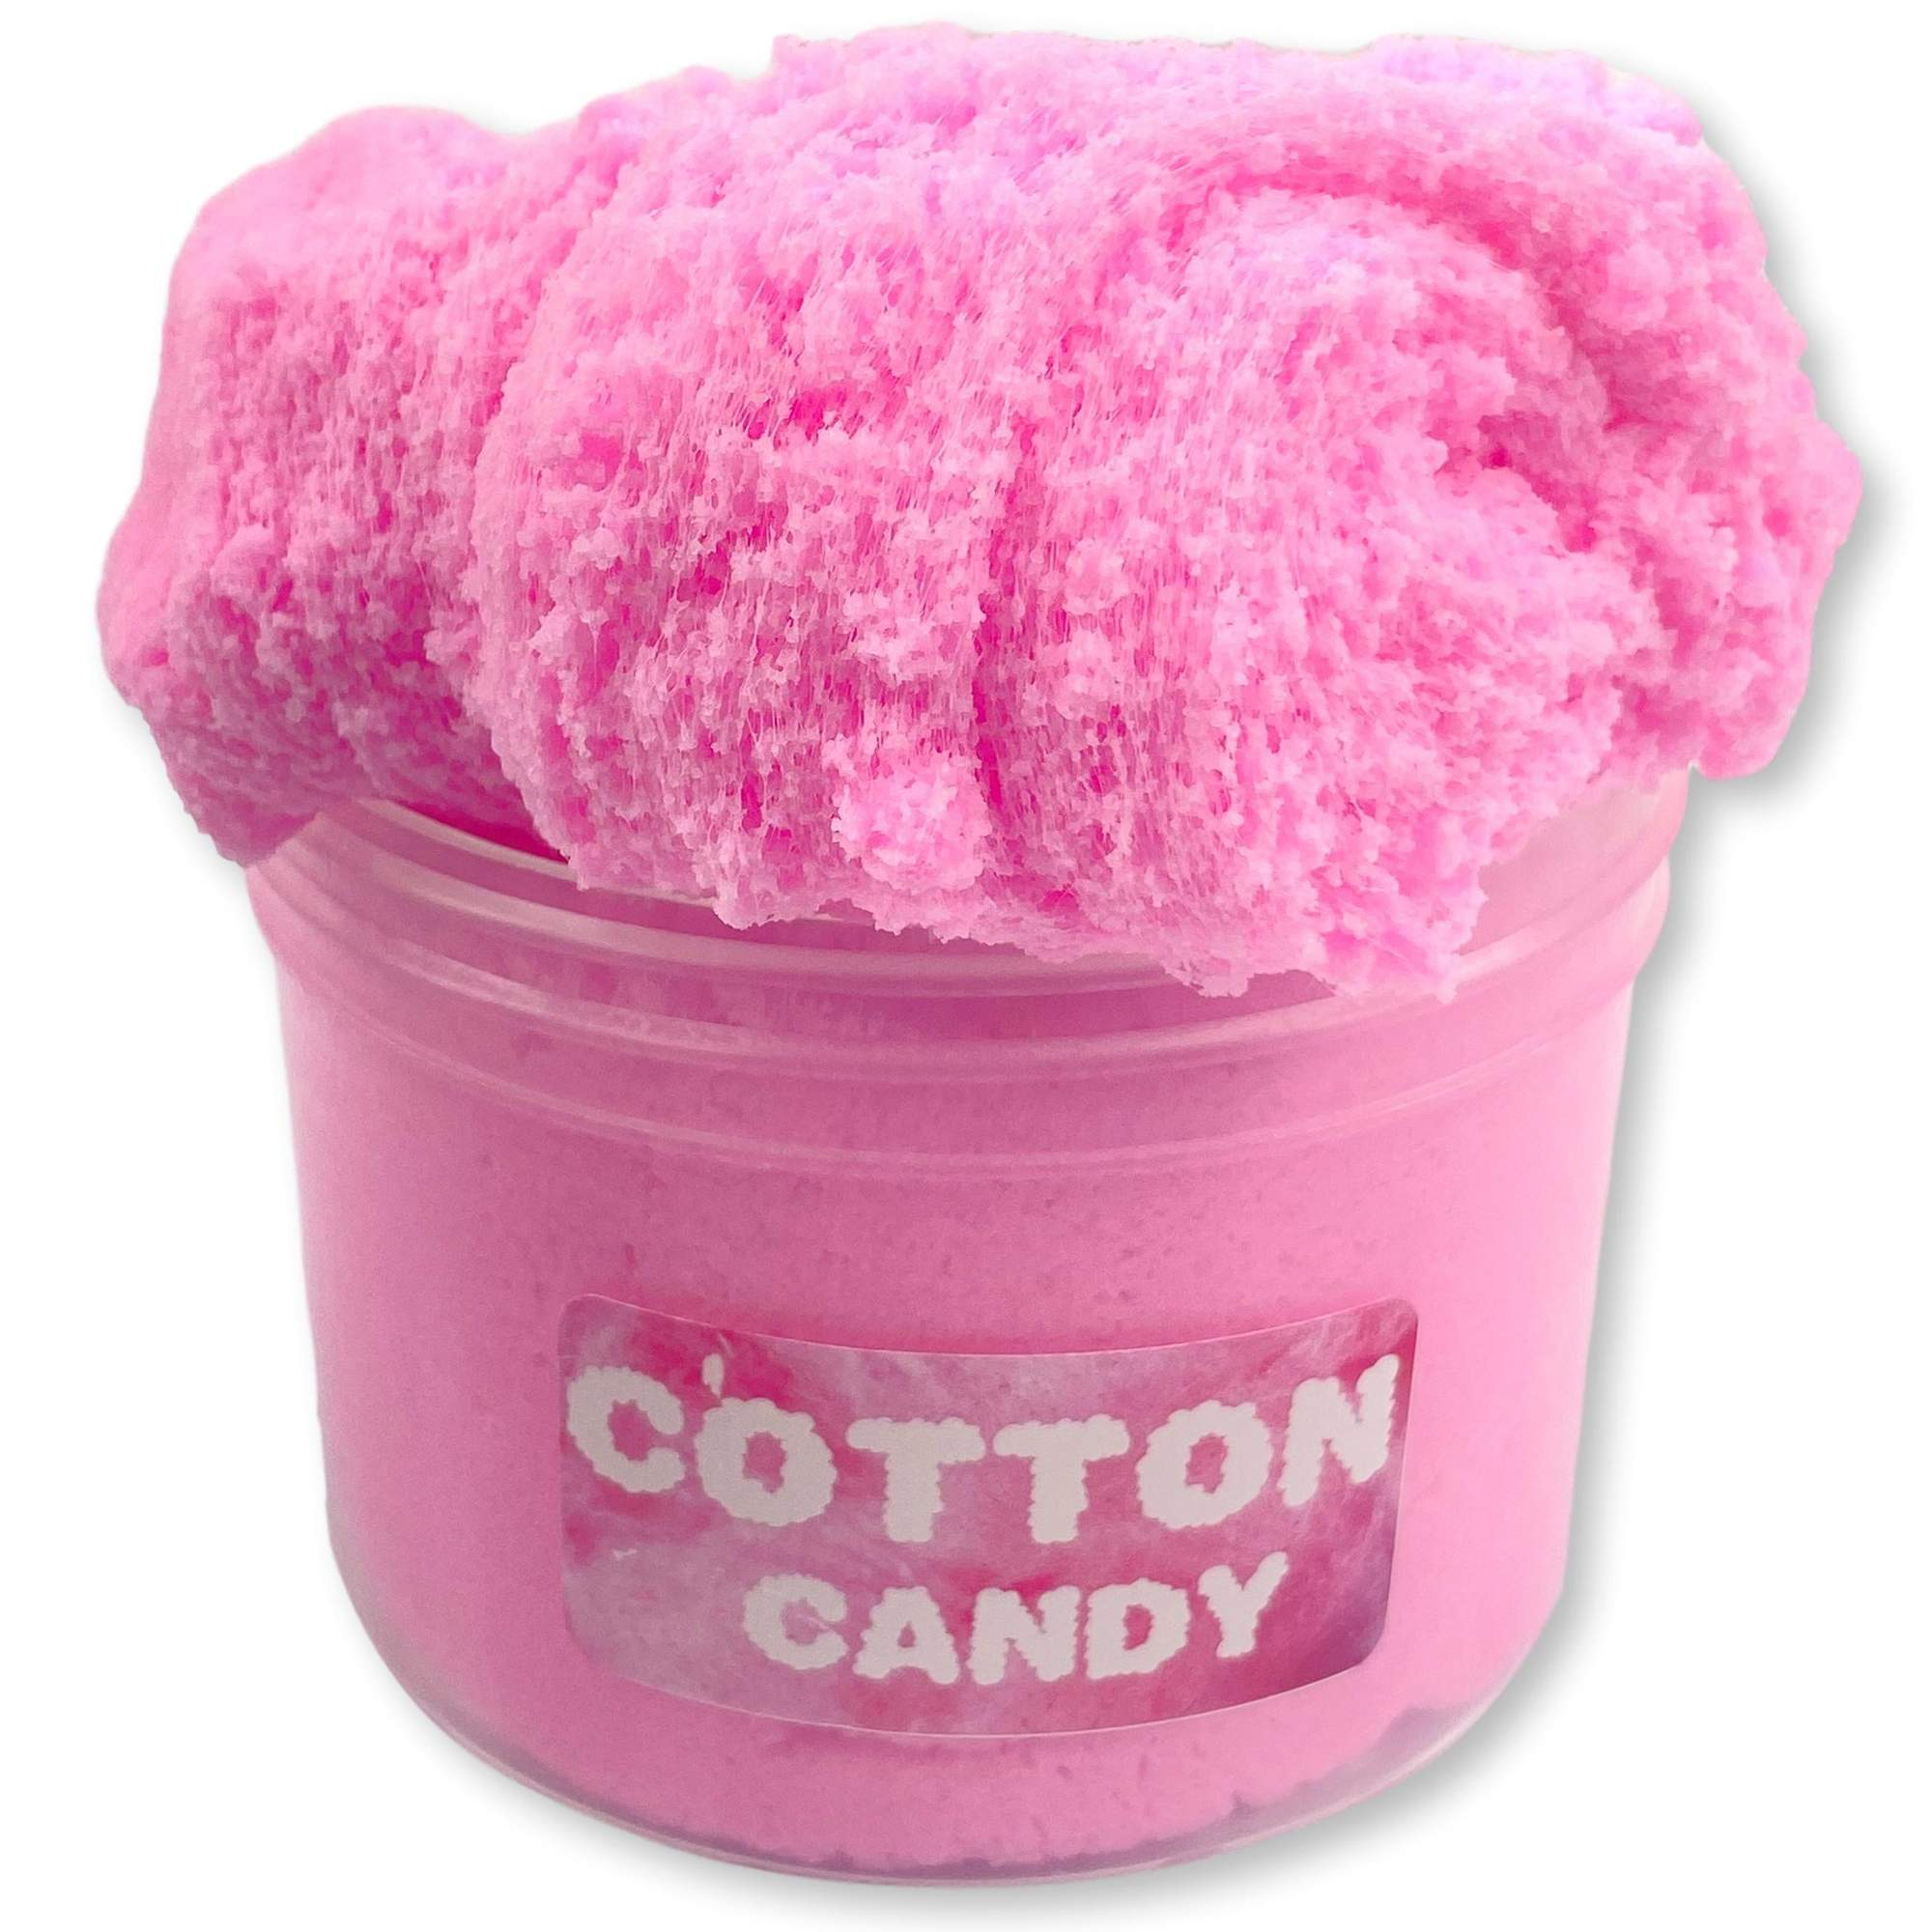 Cotton Candy - Wholesale Case of 18